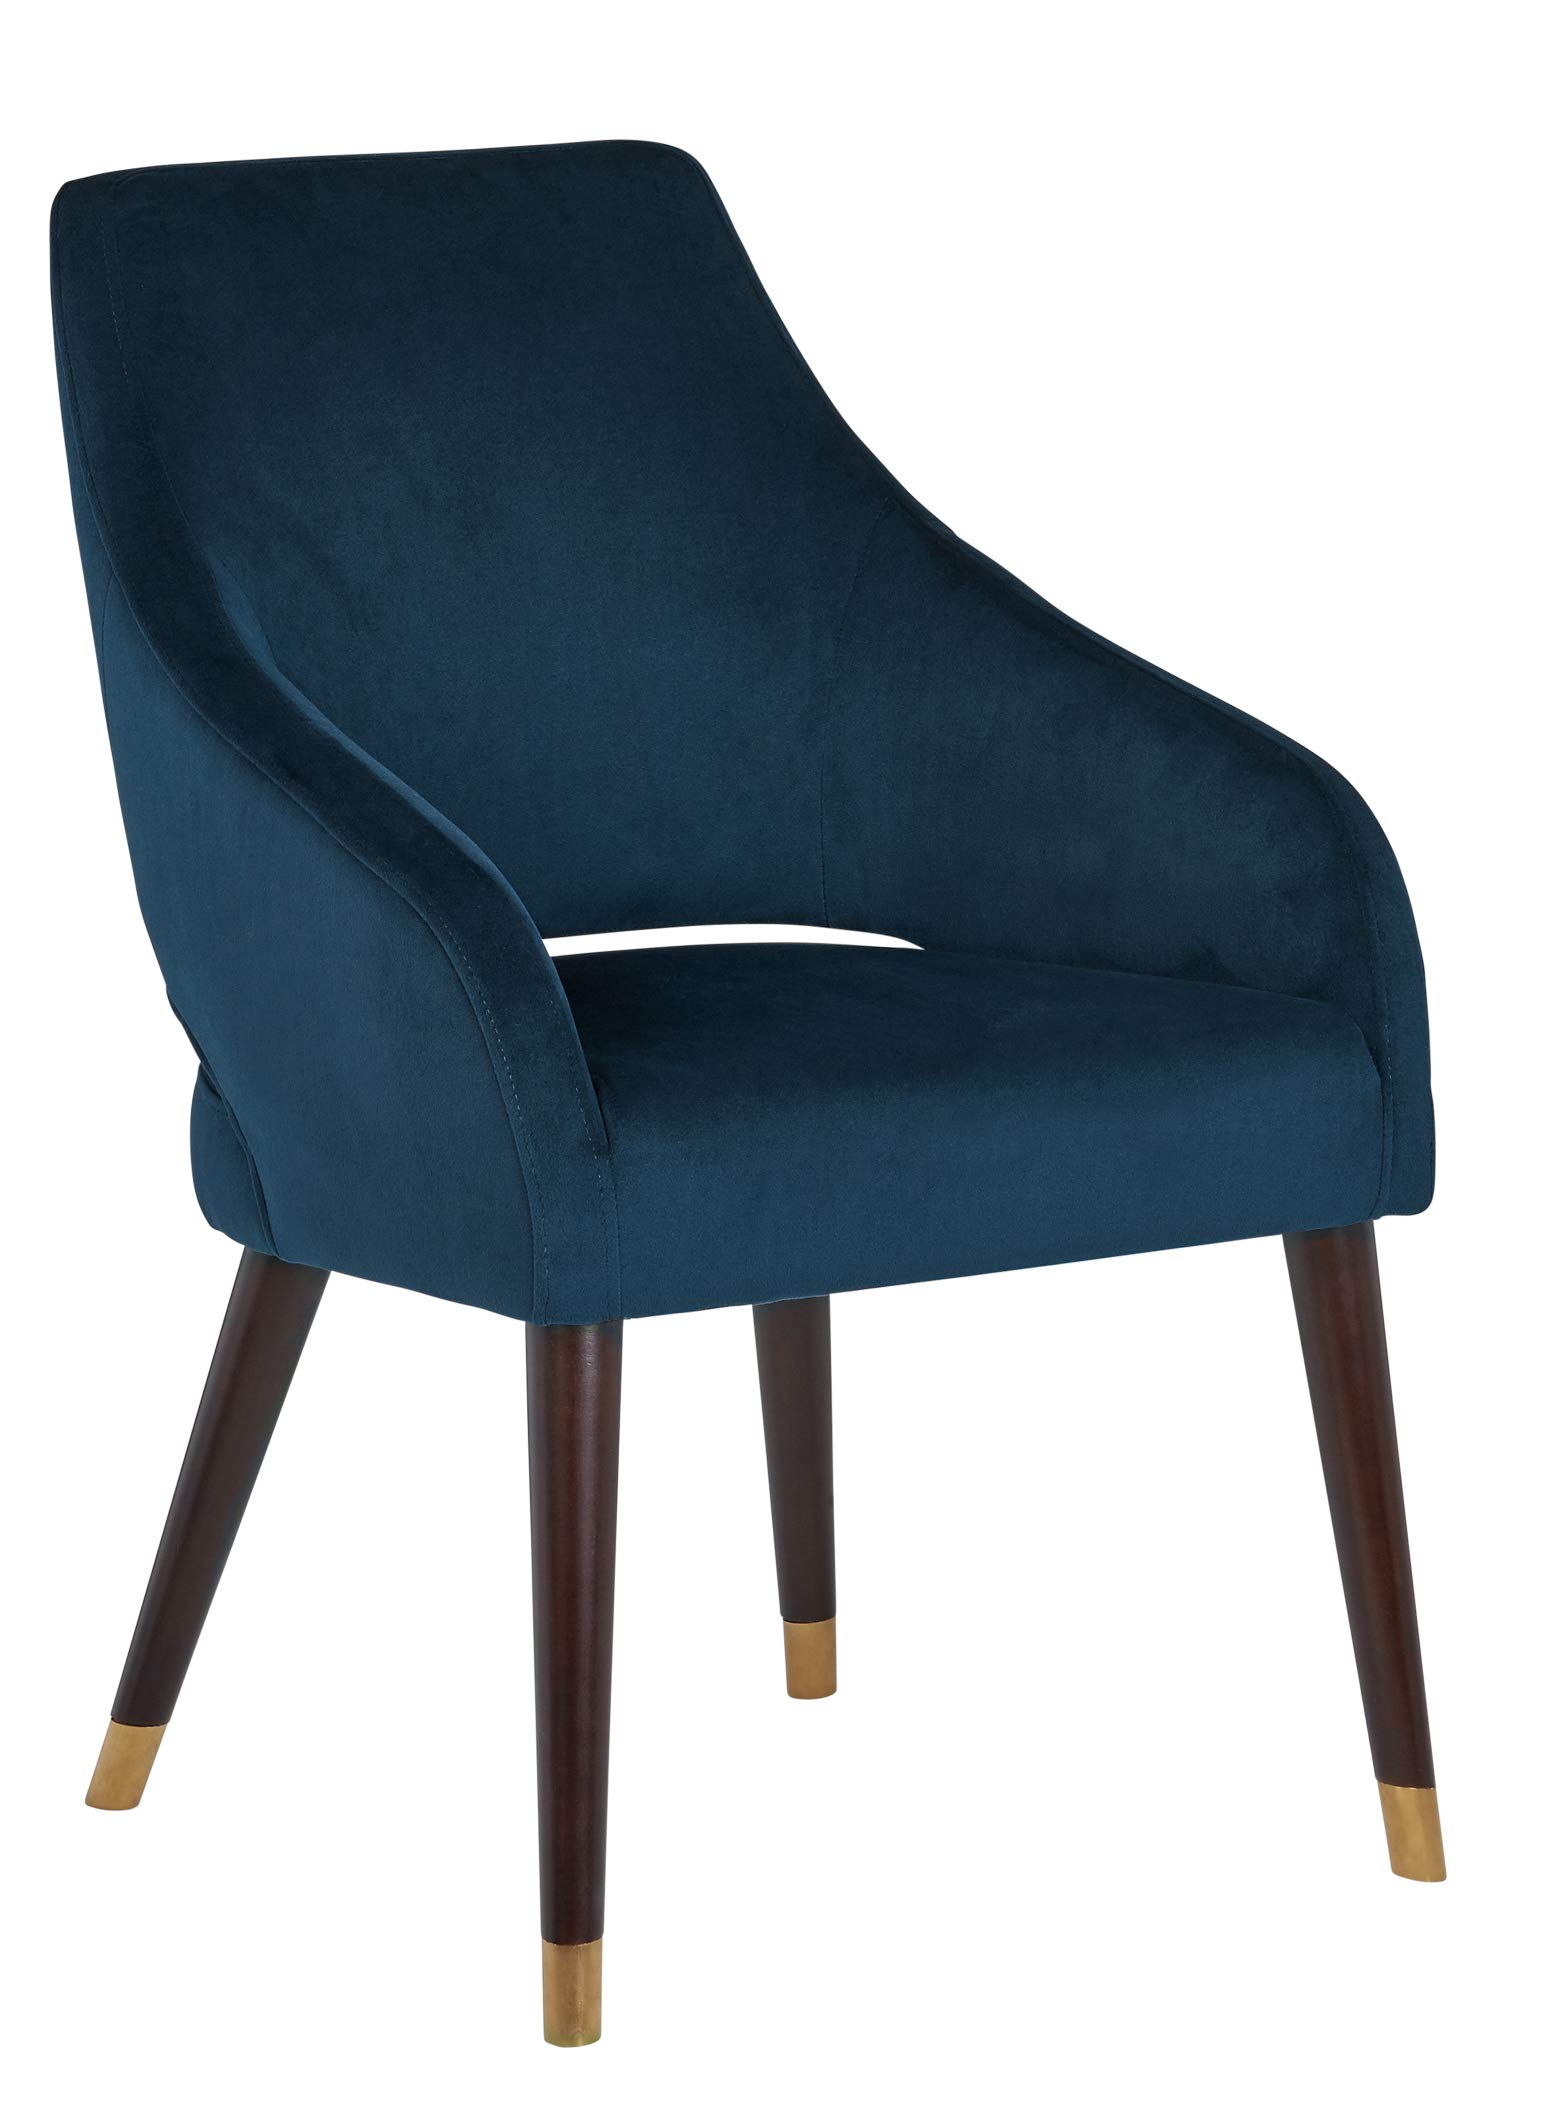 "Rivet Fir Mid-Century Modern Dining Chair, 35""H, Blue - This velvet chair will bring mid-century modern flair to your dining room. Sloping low-profile arms, the open space in the lower back, and tapered wooden legs are hallmarks of retro style, while the gold foot caps and rich colors add glam effects. 23.6""W x 24.8""D x 35.4""H; Seat Height: 19.2""H ; Seat Depth: 17.7""D; Seat Back Height: 15.7""H; Arm Height: 23.2""H Velvet upholstery on wood frame and legs - kitchen-dining-room-furniture, kitchen-dining-room, kitchen-dining-room-chairs - 71BzGtO2CML -"